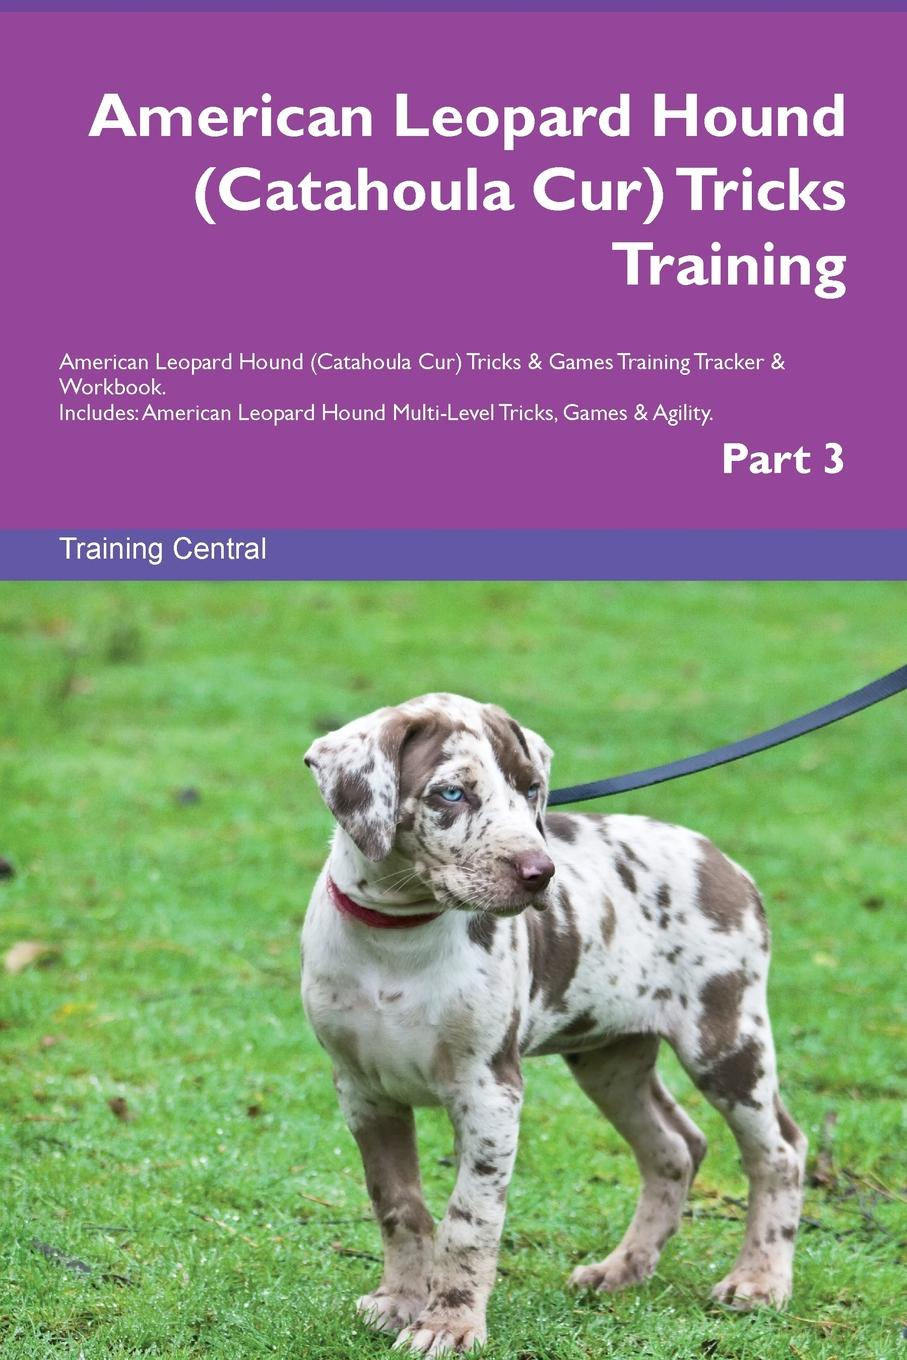 Training Central American Leopard Hound (Catahoula Cur) Tricks Training American Leopard Hound (Catahoula Cur) Tricks & Games Training Tracker & Workbook. Includes. American Leopard Hound Multi-Level Tricks, Games & Agility. Part 3 training central russian piebald hound tricks training russian piebald hound tricks games training tracker workbook includes russian piebald hound multi level tricks games agility part 3